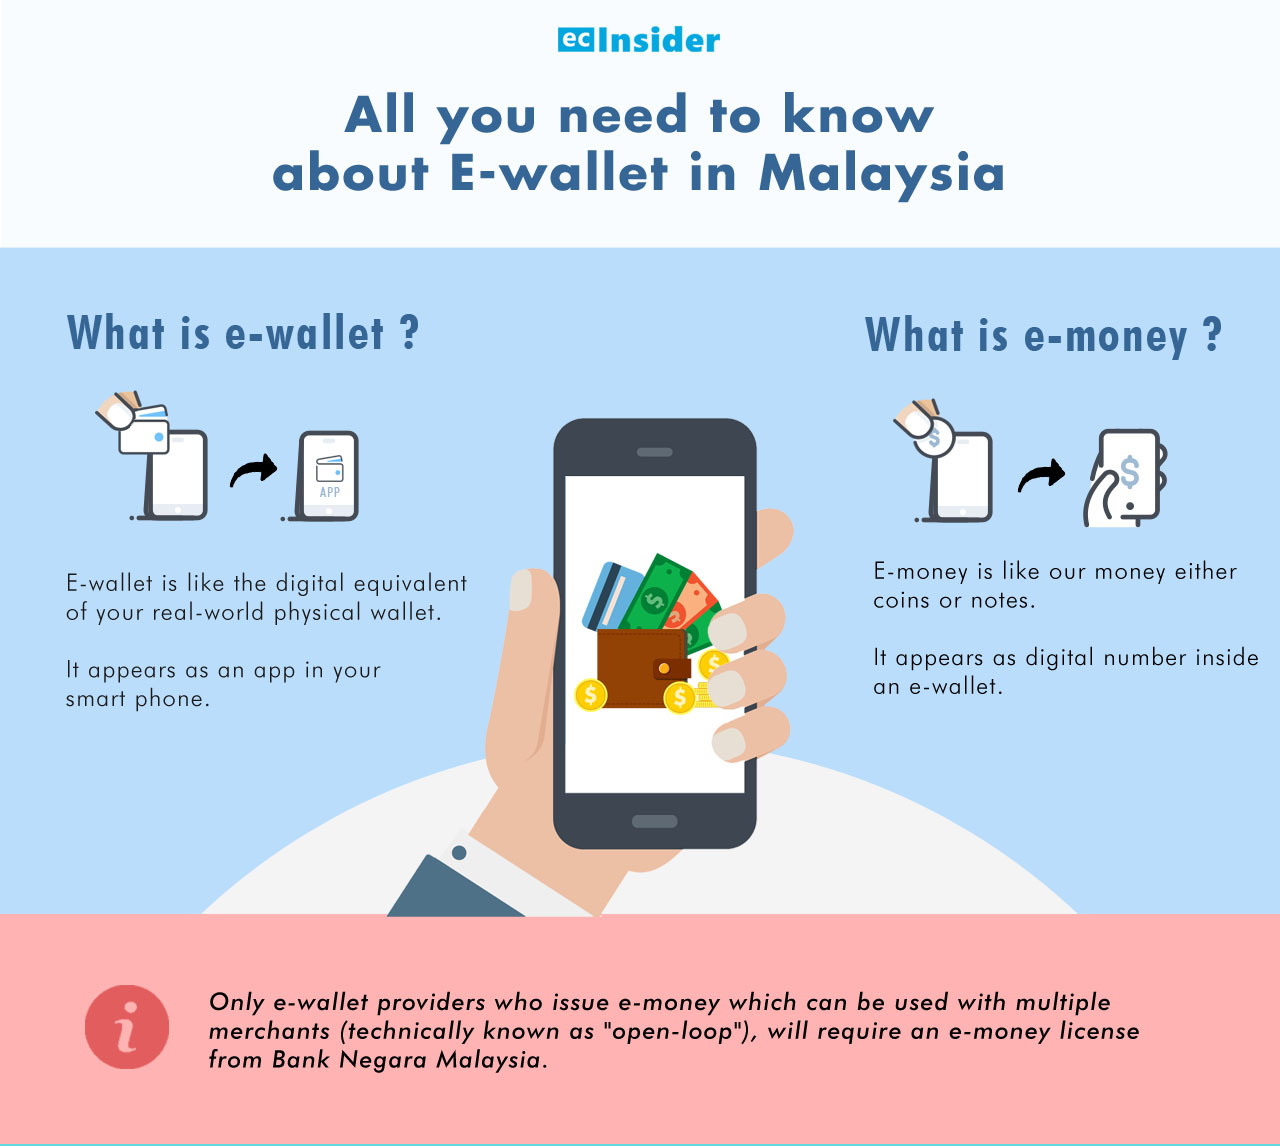 What is e-wallet vs e-money?